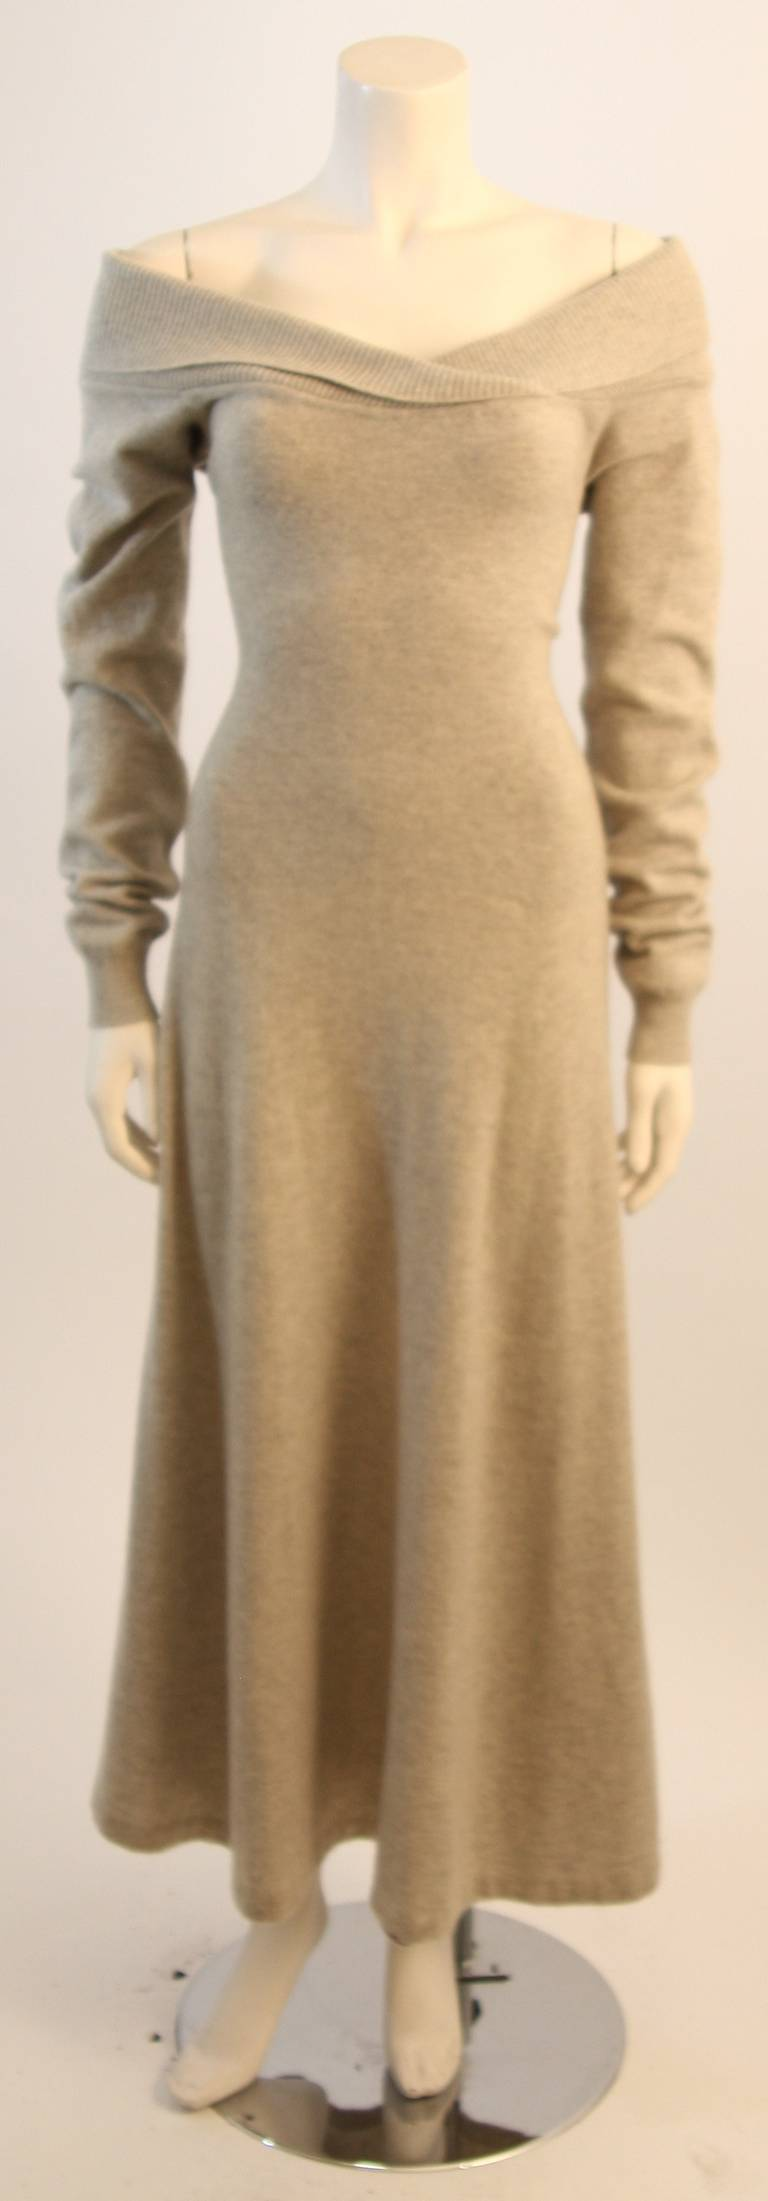 Ralph Lauren Full Length Cashmere Off-the-shoulder Dress Size Medium 2